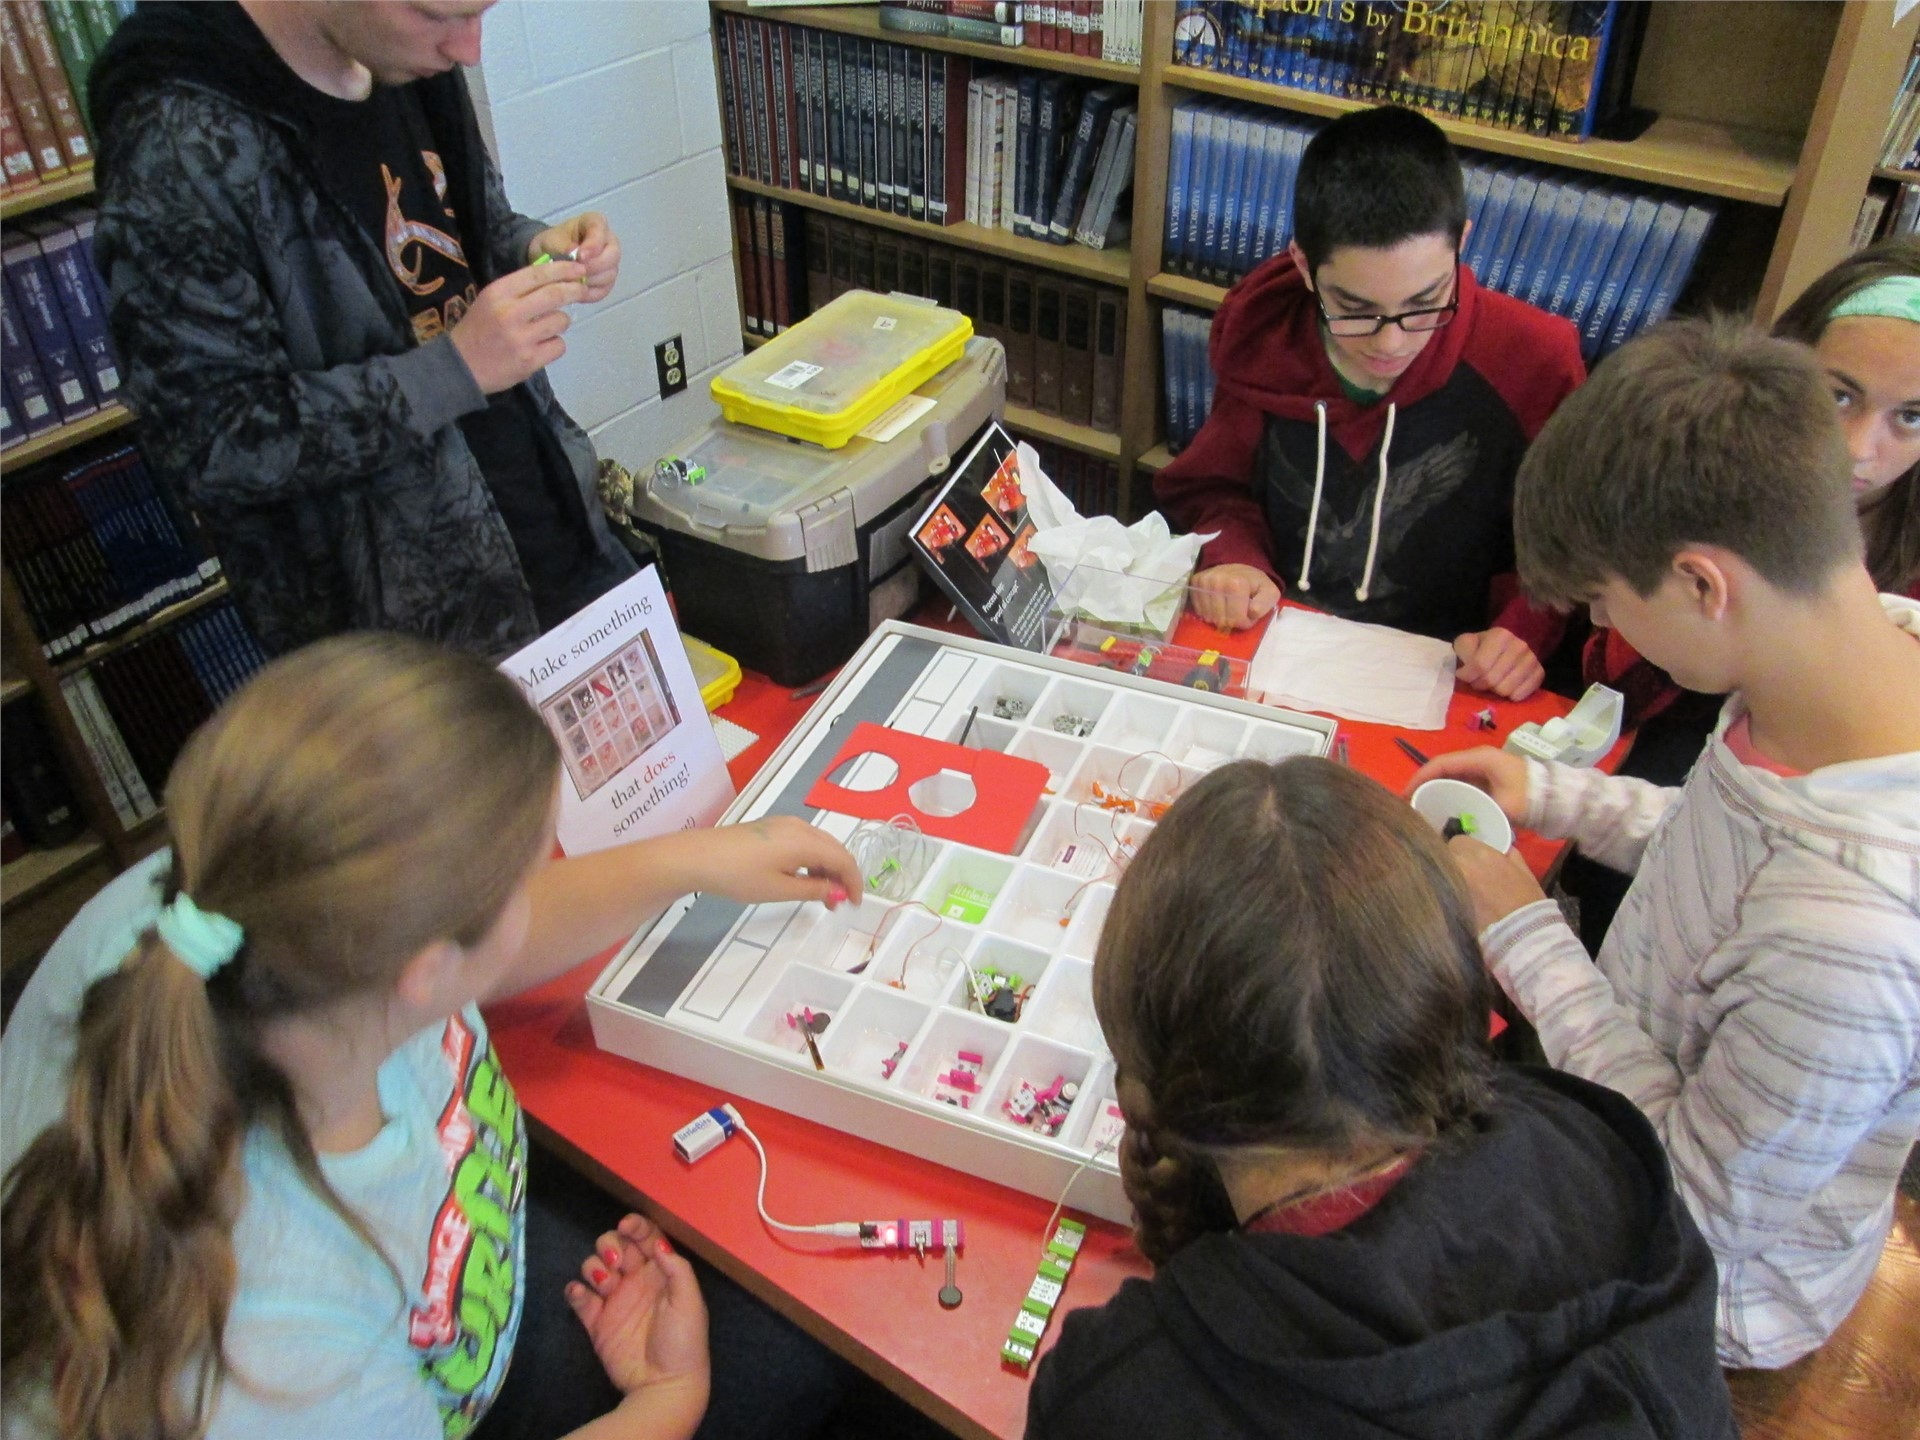 Several students experimenting with building littleBits electric devices.